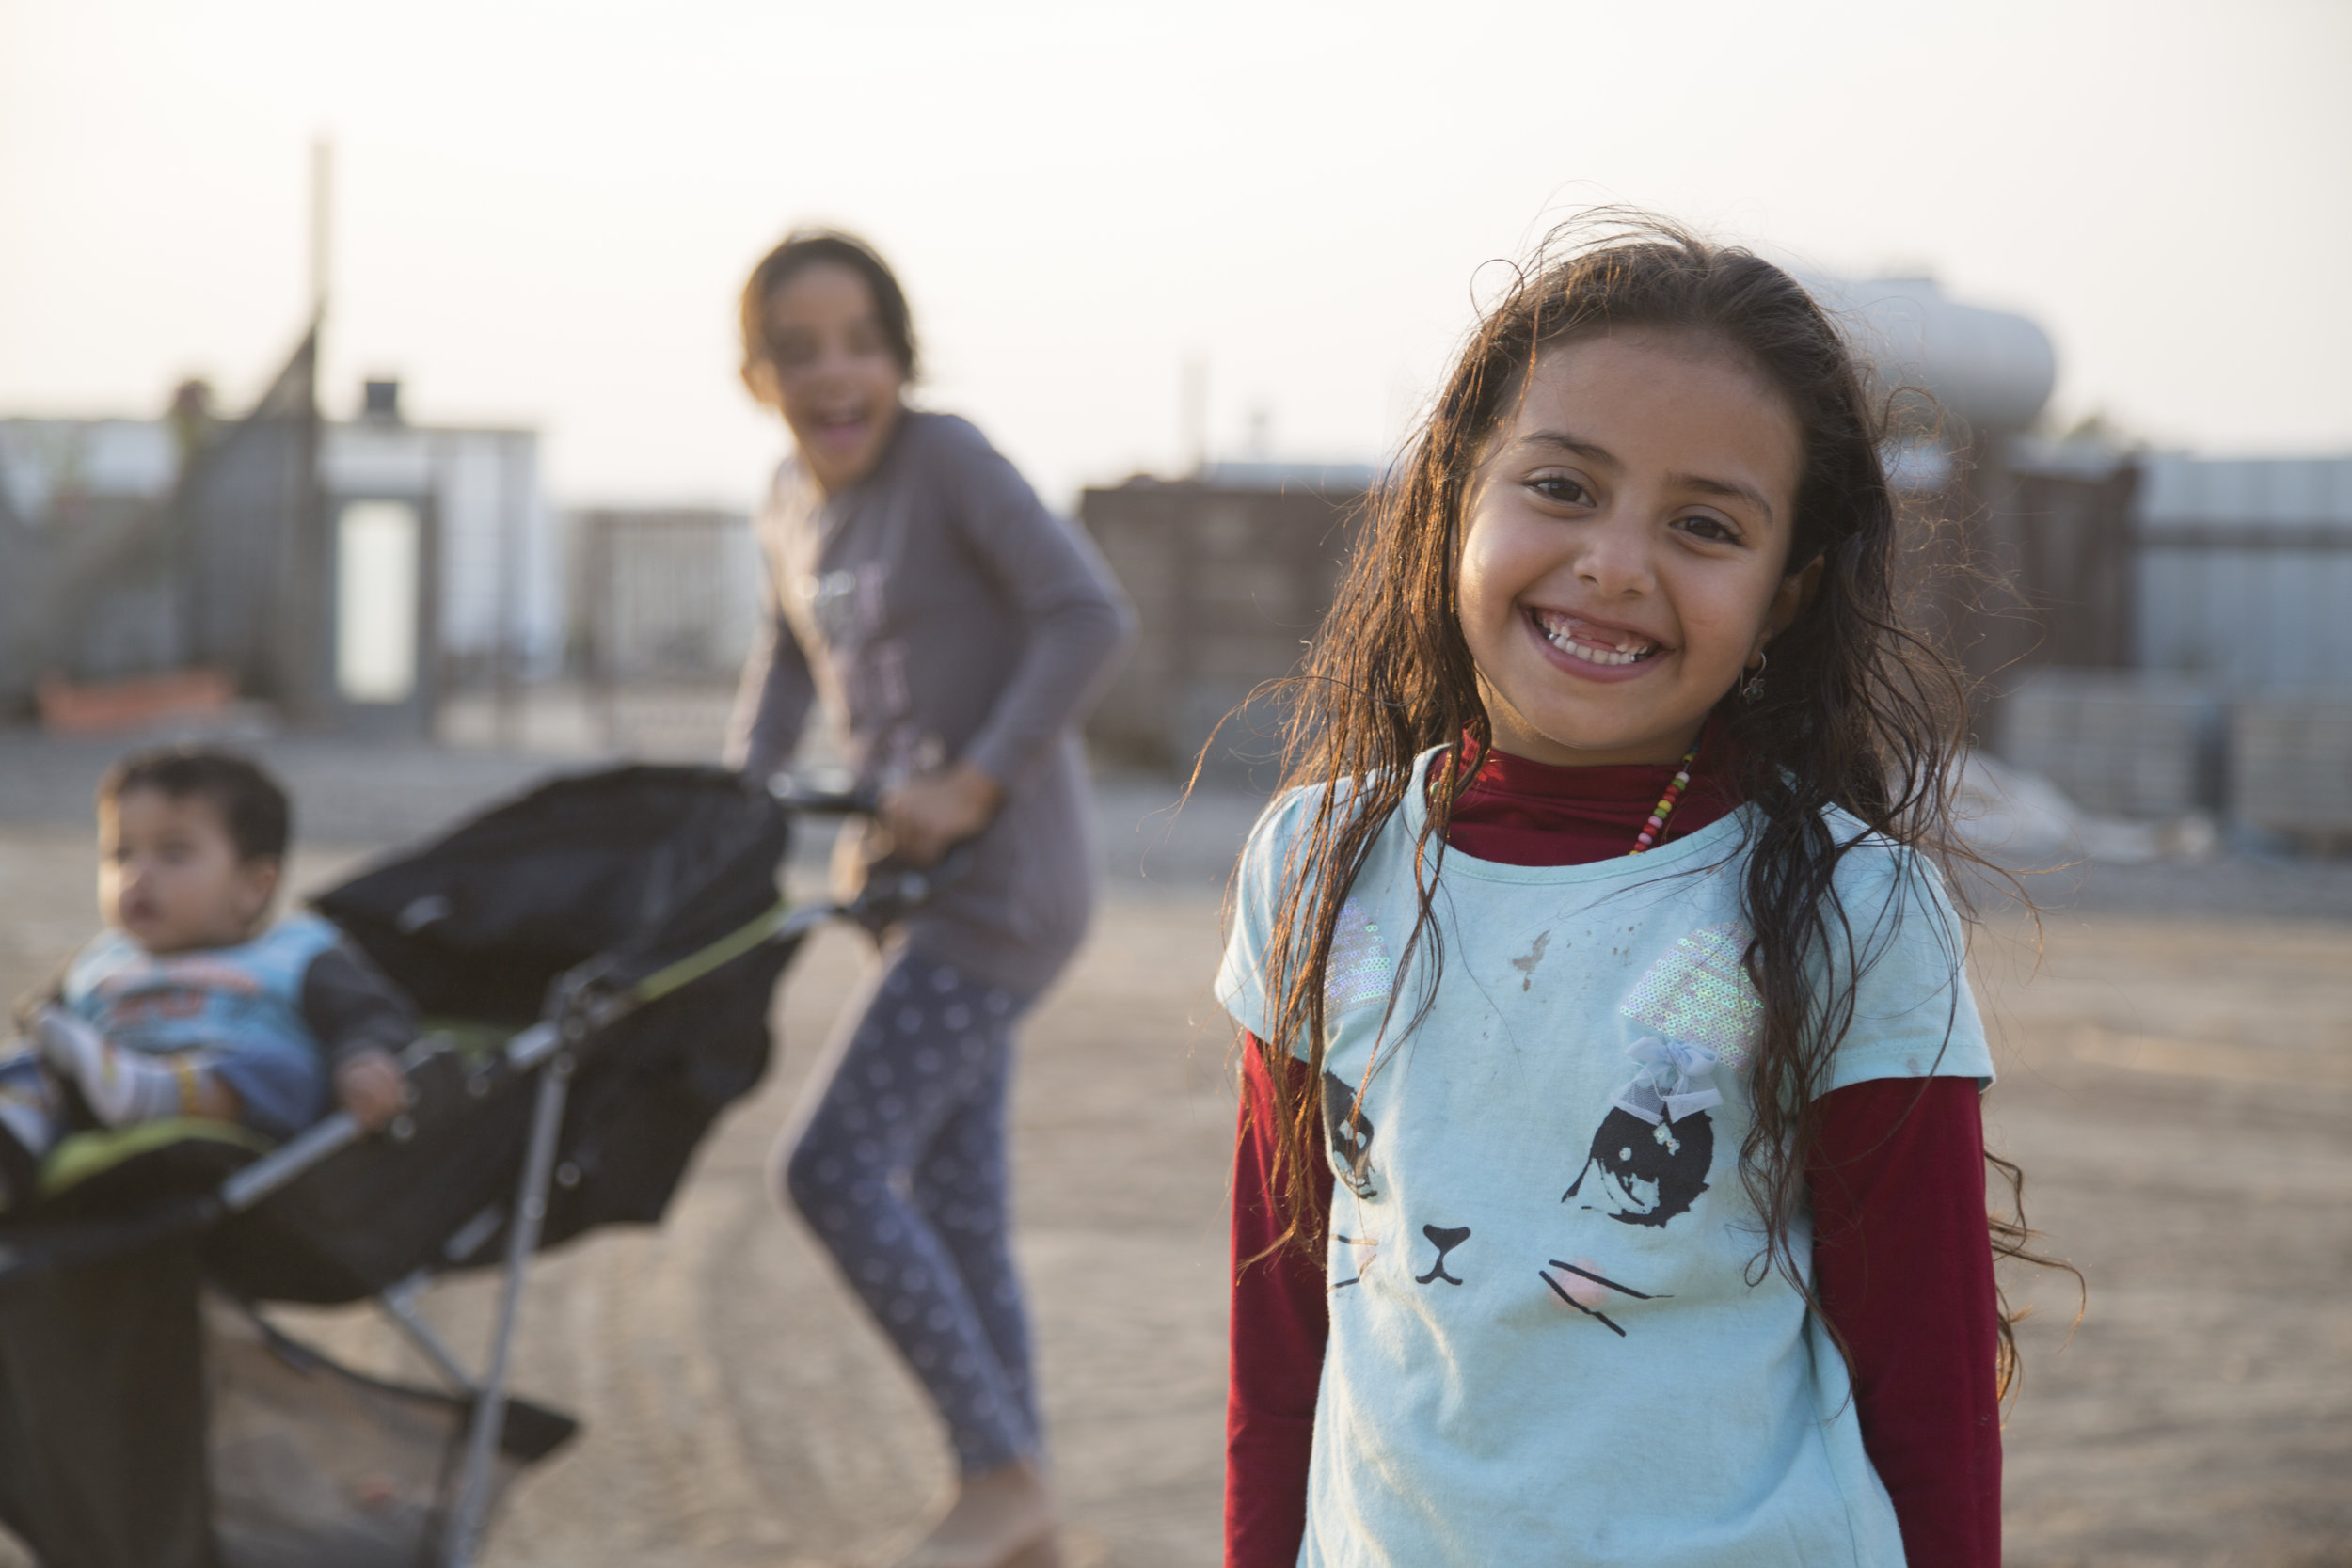 Children in bedouin village in Negev, Israel